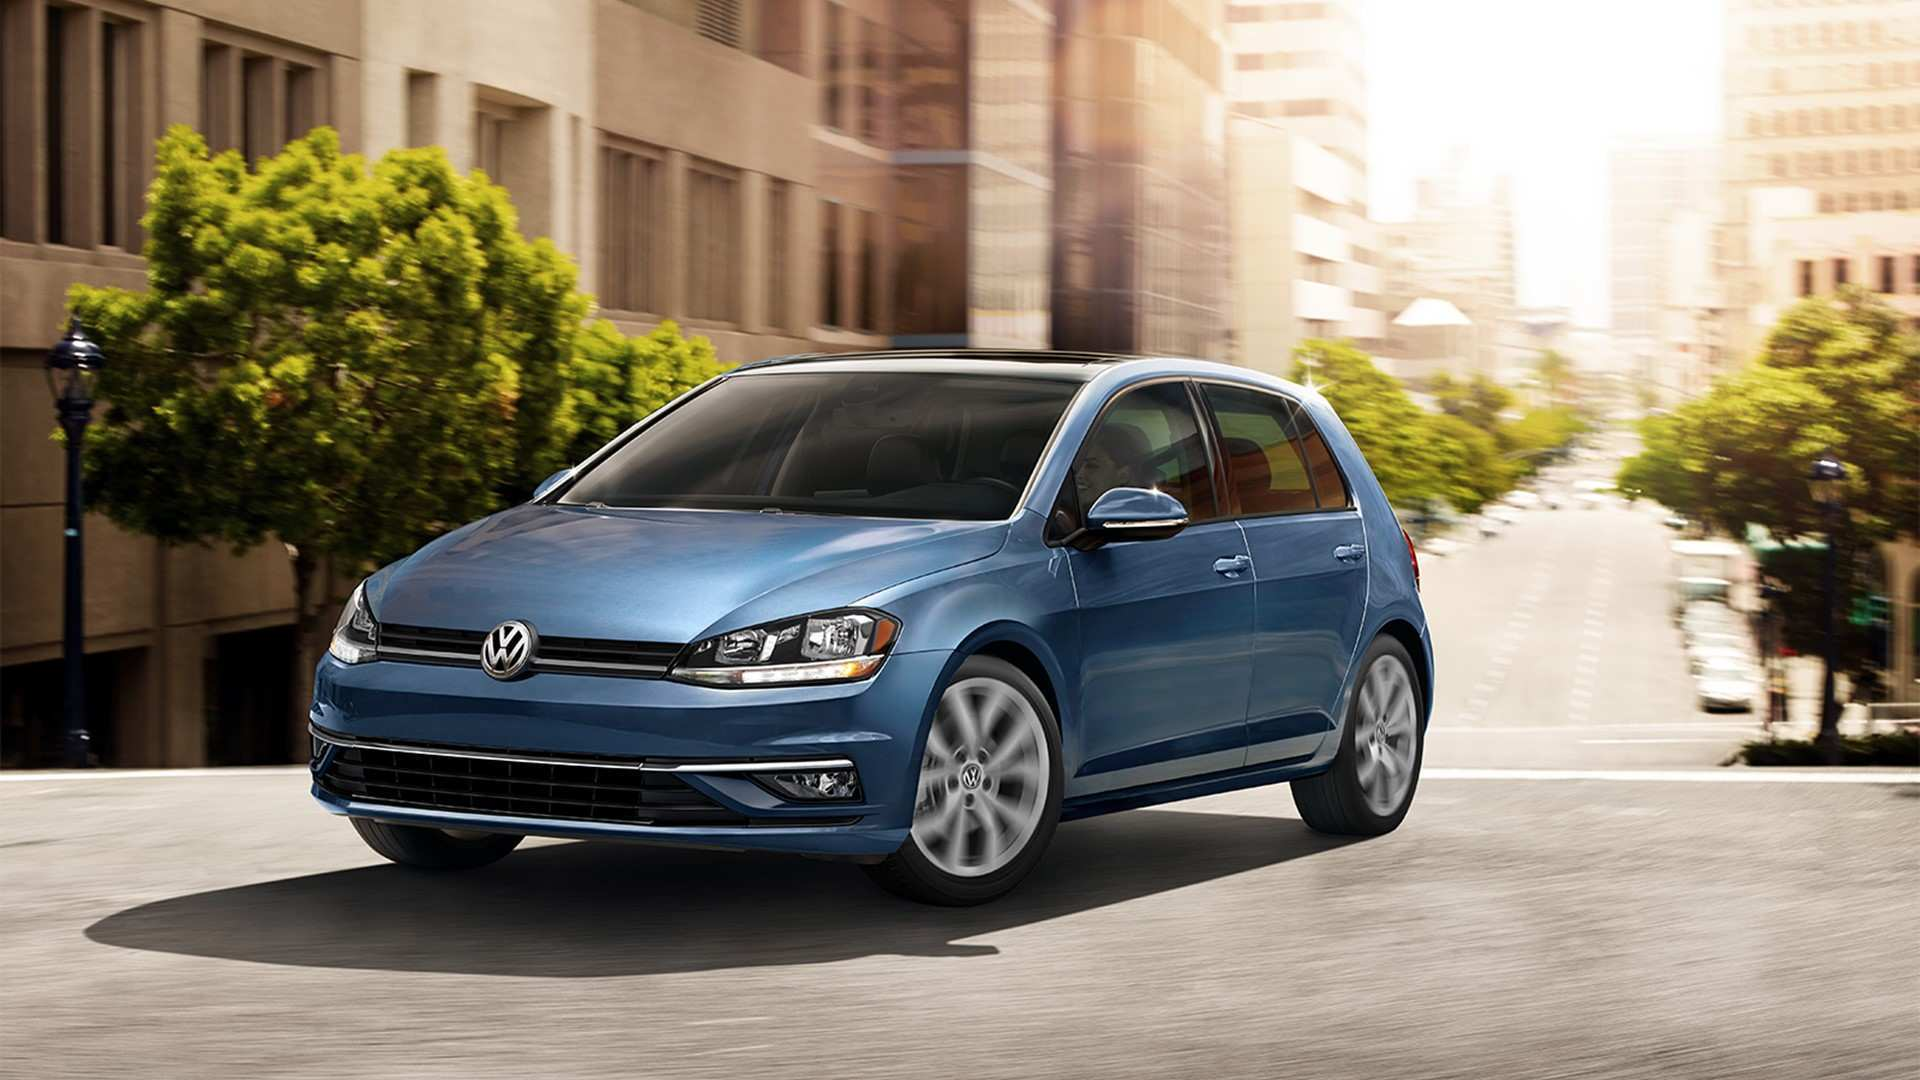 86 All New Vw Golf 2019 Configurations with Vw Golf 2019